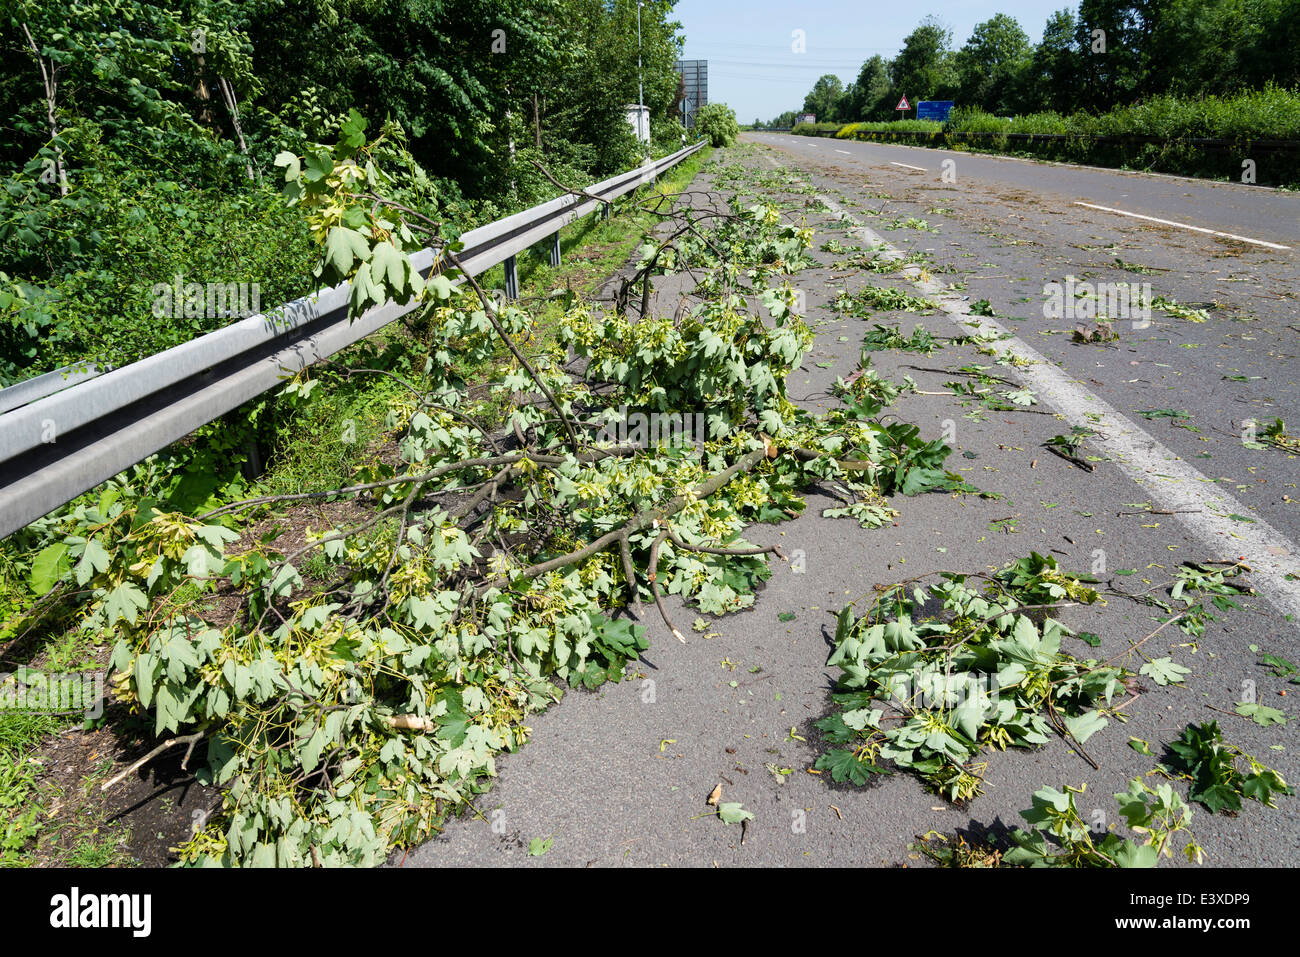 Fallen branches lay on the A43 motorway in Herne, Ruhr area, Western Germany, after the severe storm front Ela - Stock Image